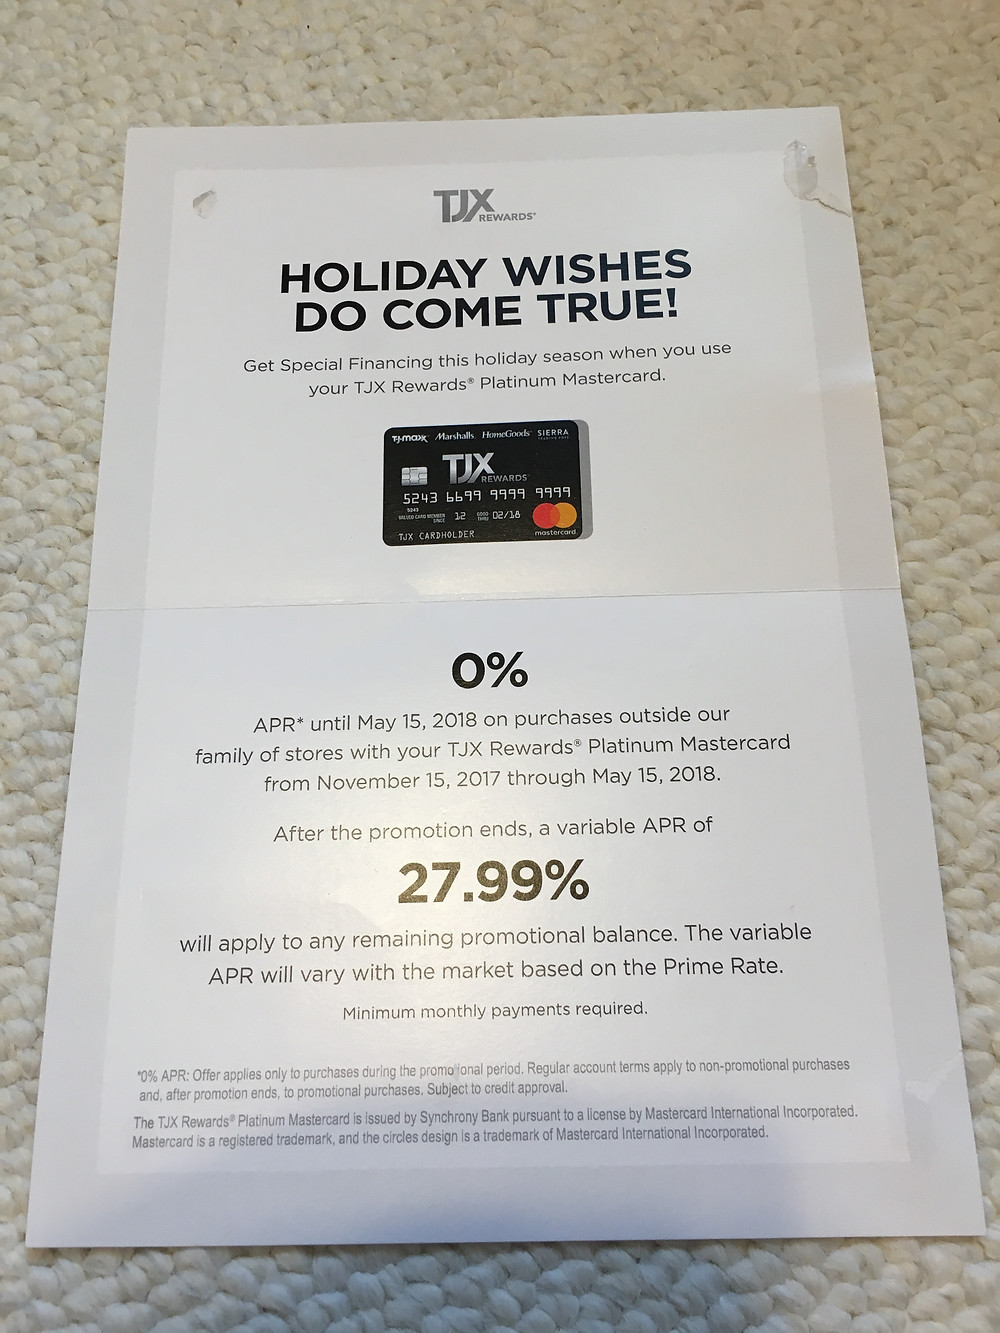 The 0% rate TJ Maxx is offering is tempting but watch out if you don't make the deadline!